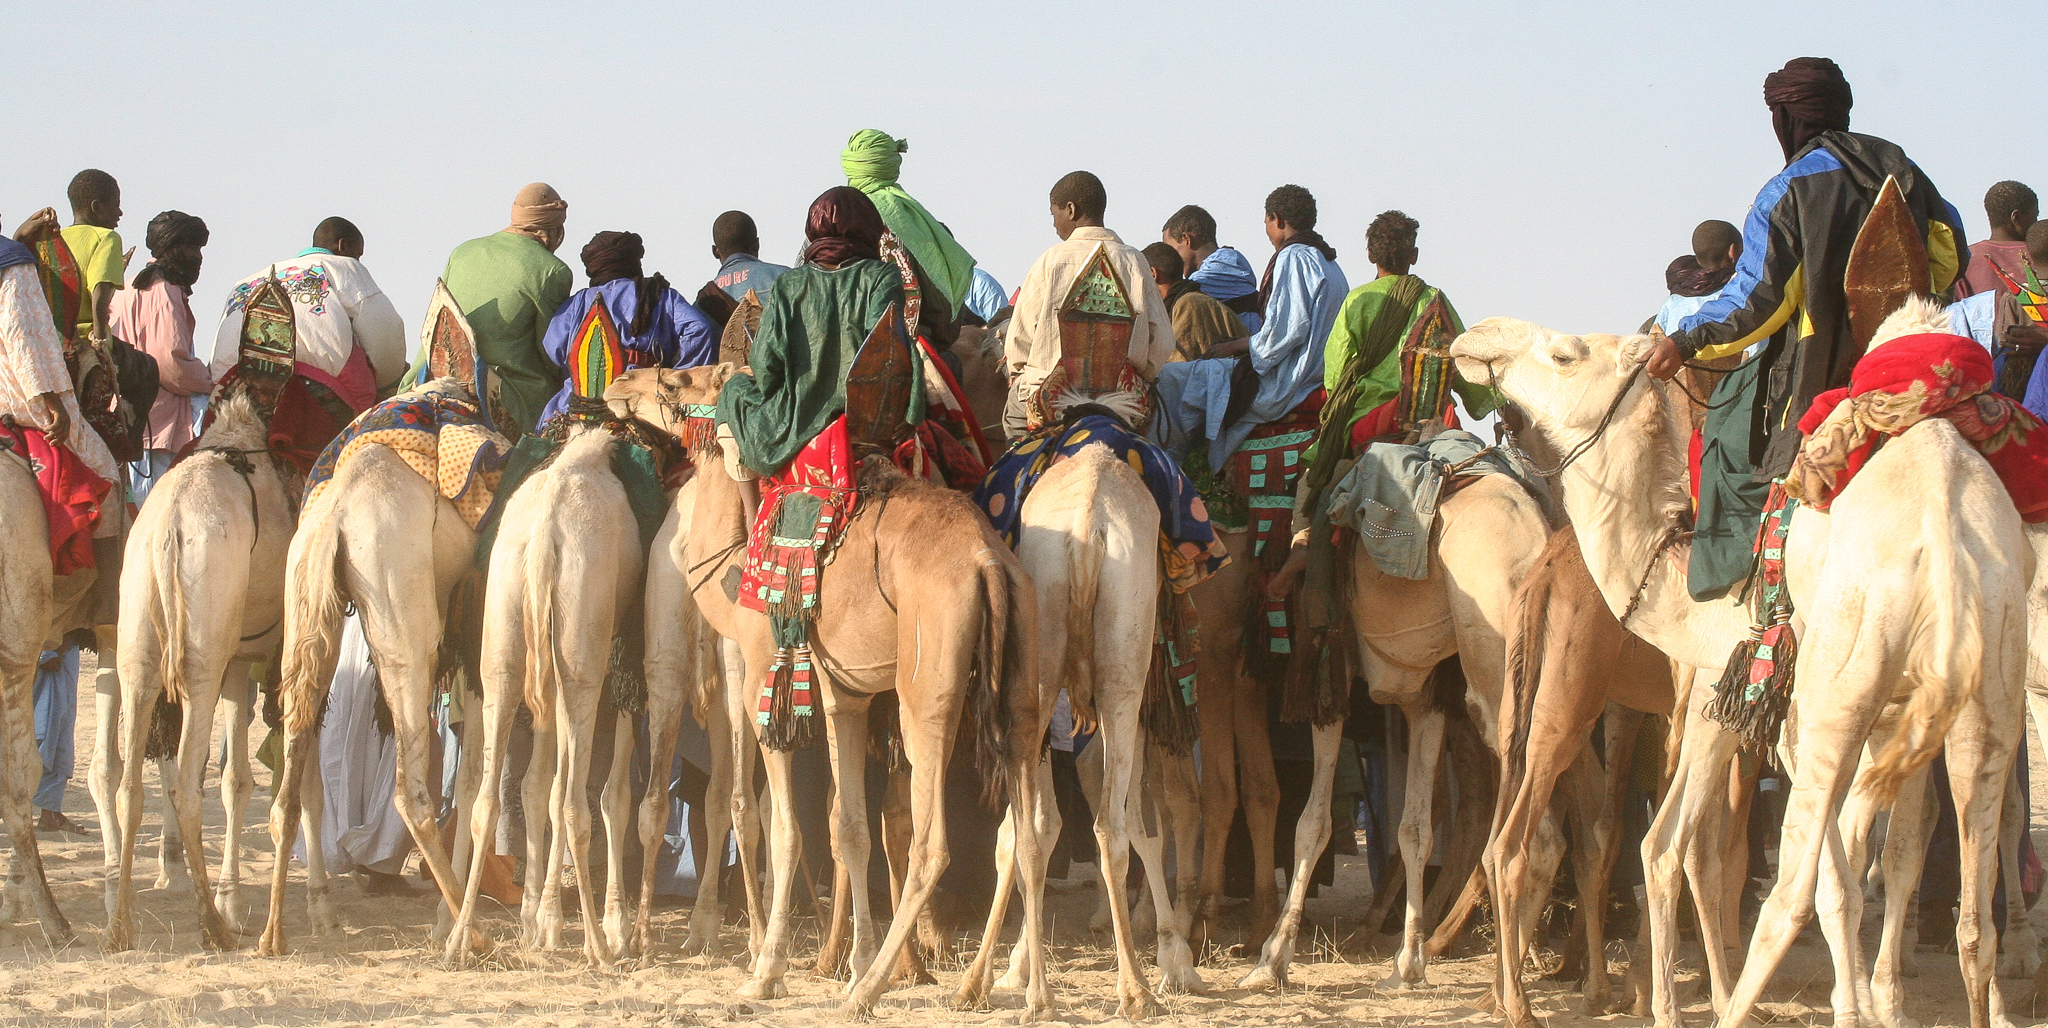 GATHERING FOR THE START OF A CAMEL RACE. VARIOUS EVENTS ARE HELD DURING THE DAY, THE NIGHT BEING RESERVED FOR MUSIC. BY EARLY 2012, THIS WHOLE REGION HAD FALLEN UNDER THE CONTROL OF AQIM (Al-QAEDA IN THE ISLAMIC MAGHREB). AND THE MUSIC FINALLY STOPPED.